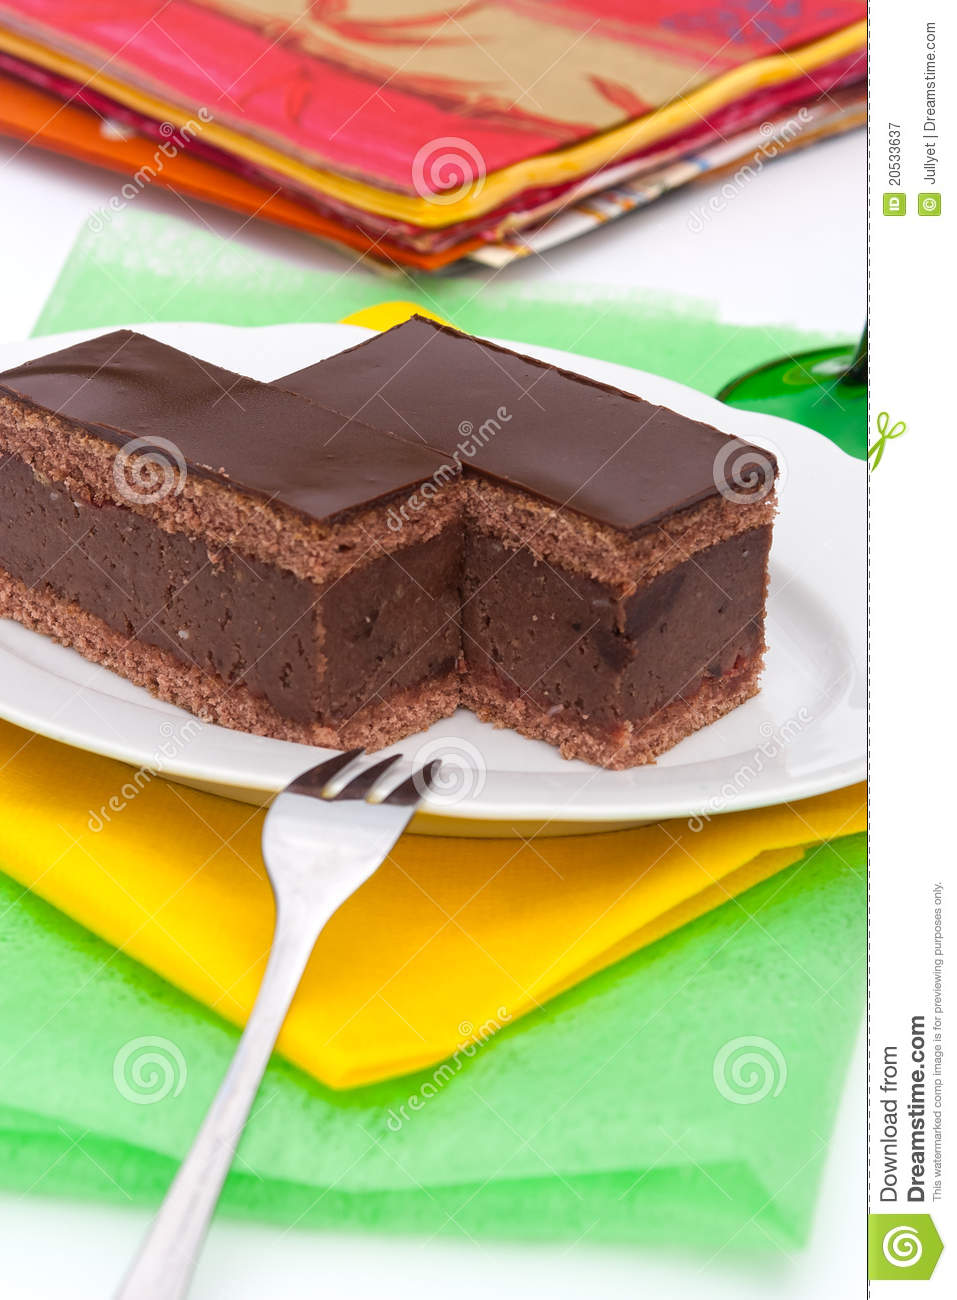 Chocolate Cake With Rum Royalty Free Stock Photography ...